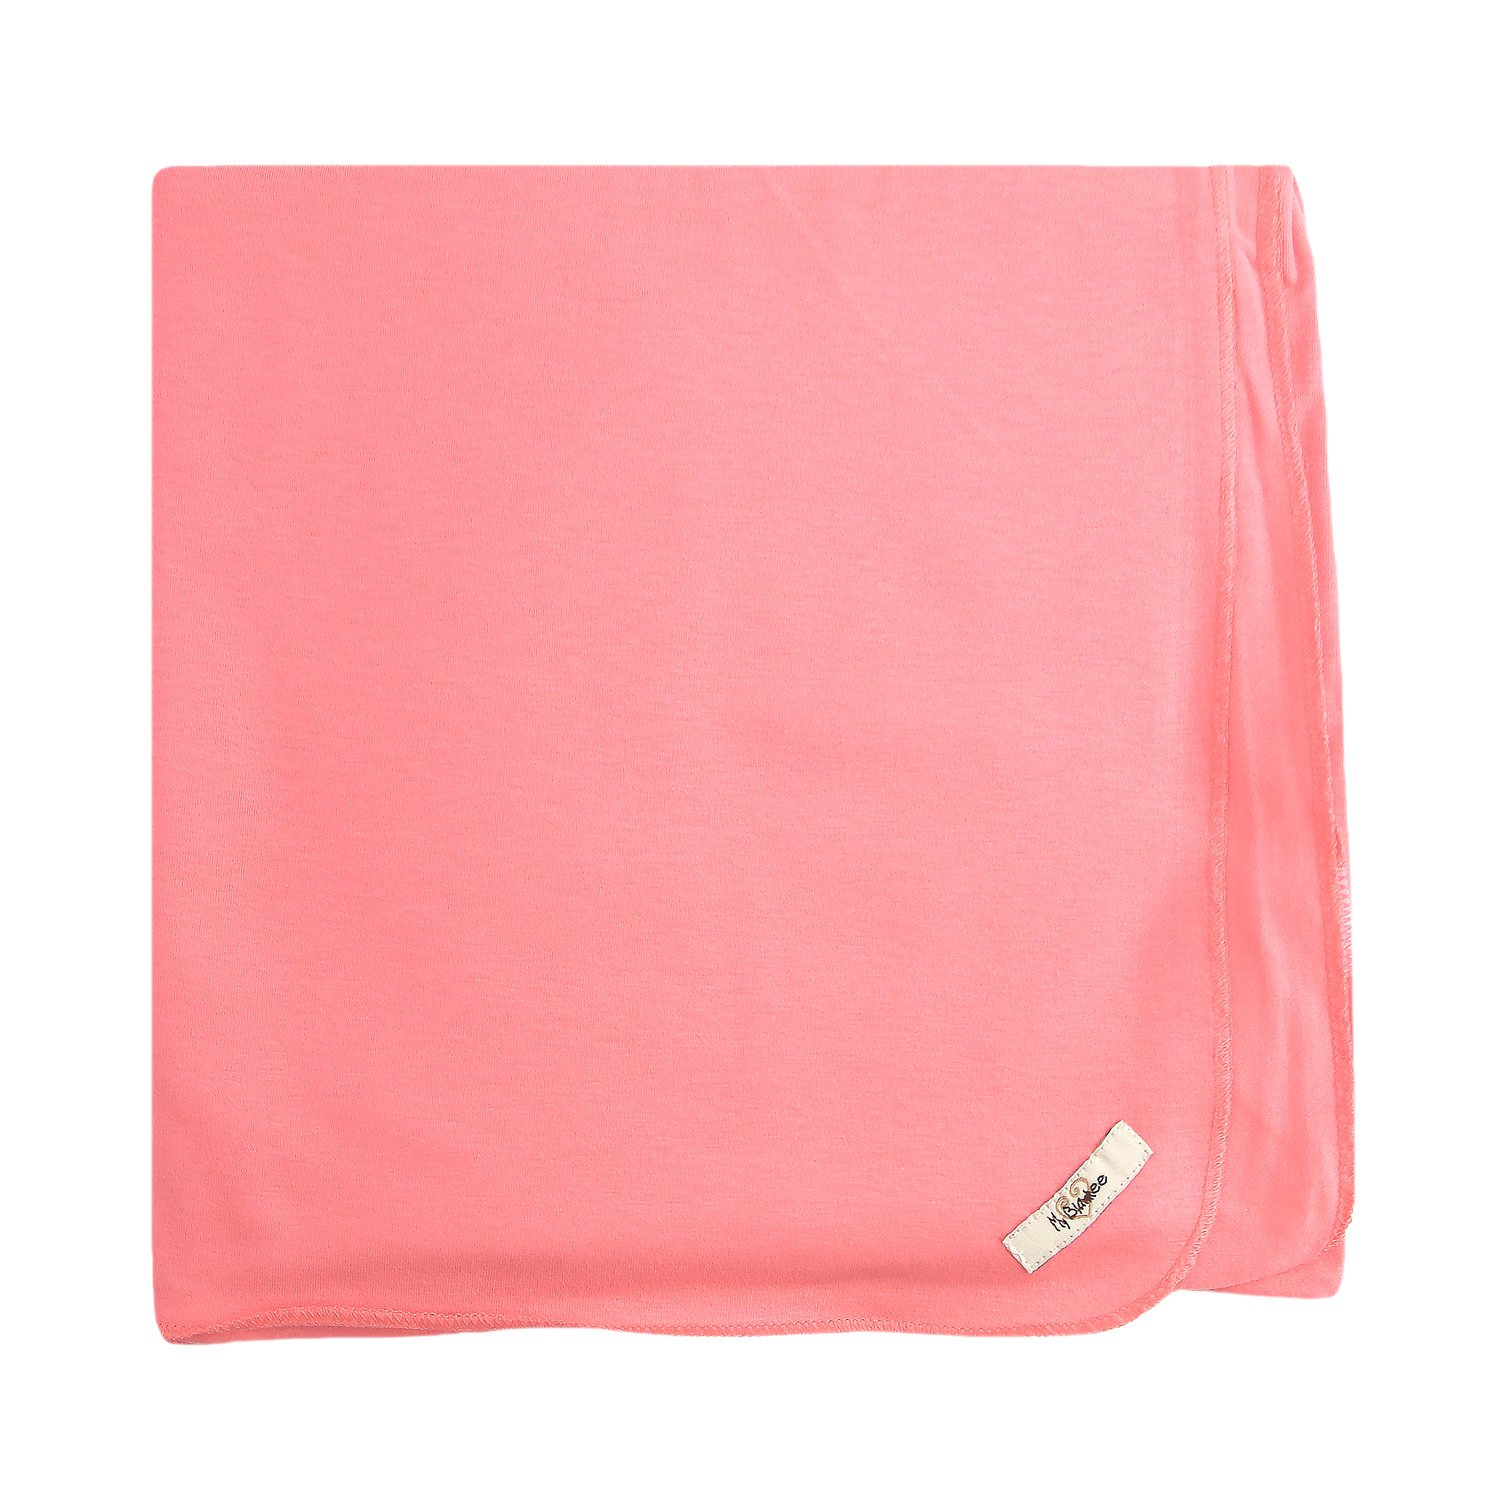 My Blankee Organic Cotton  Jersey Knit Swaddle Baby Blanket, 47'' X 47'', Coral